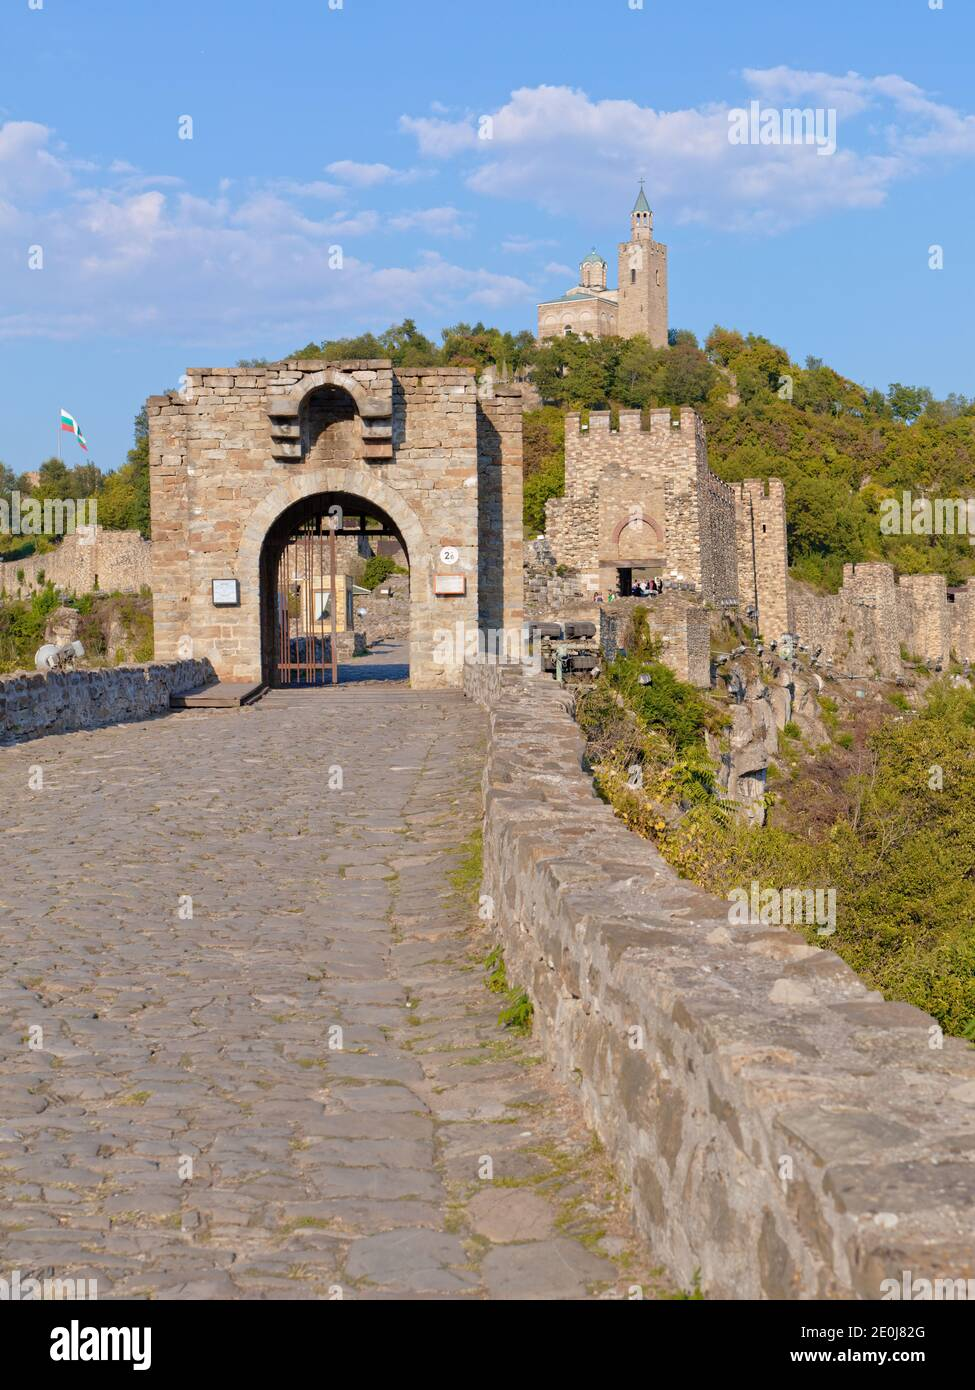 Main gate of Tsarevets fortress on the hill with same name in Veliko Tarnovo, Bulgaria. Patriarchal Cathedral of the Holy Ascension of the Lord on top Stock Photo